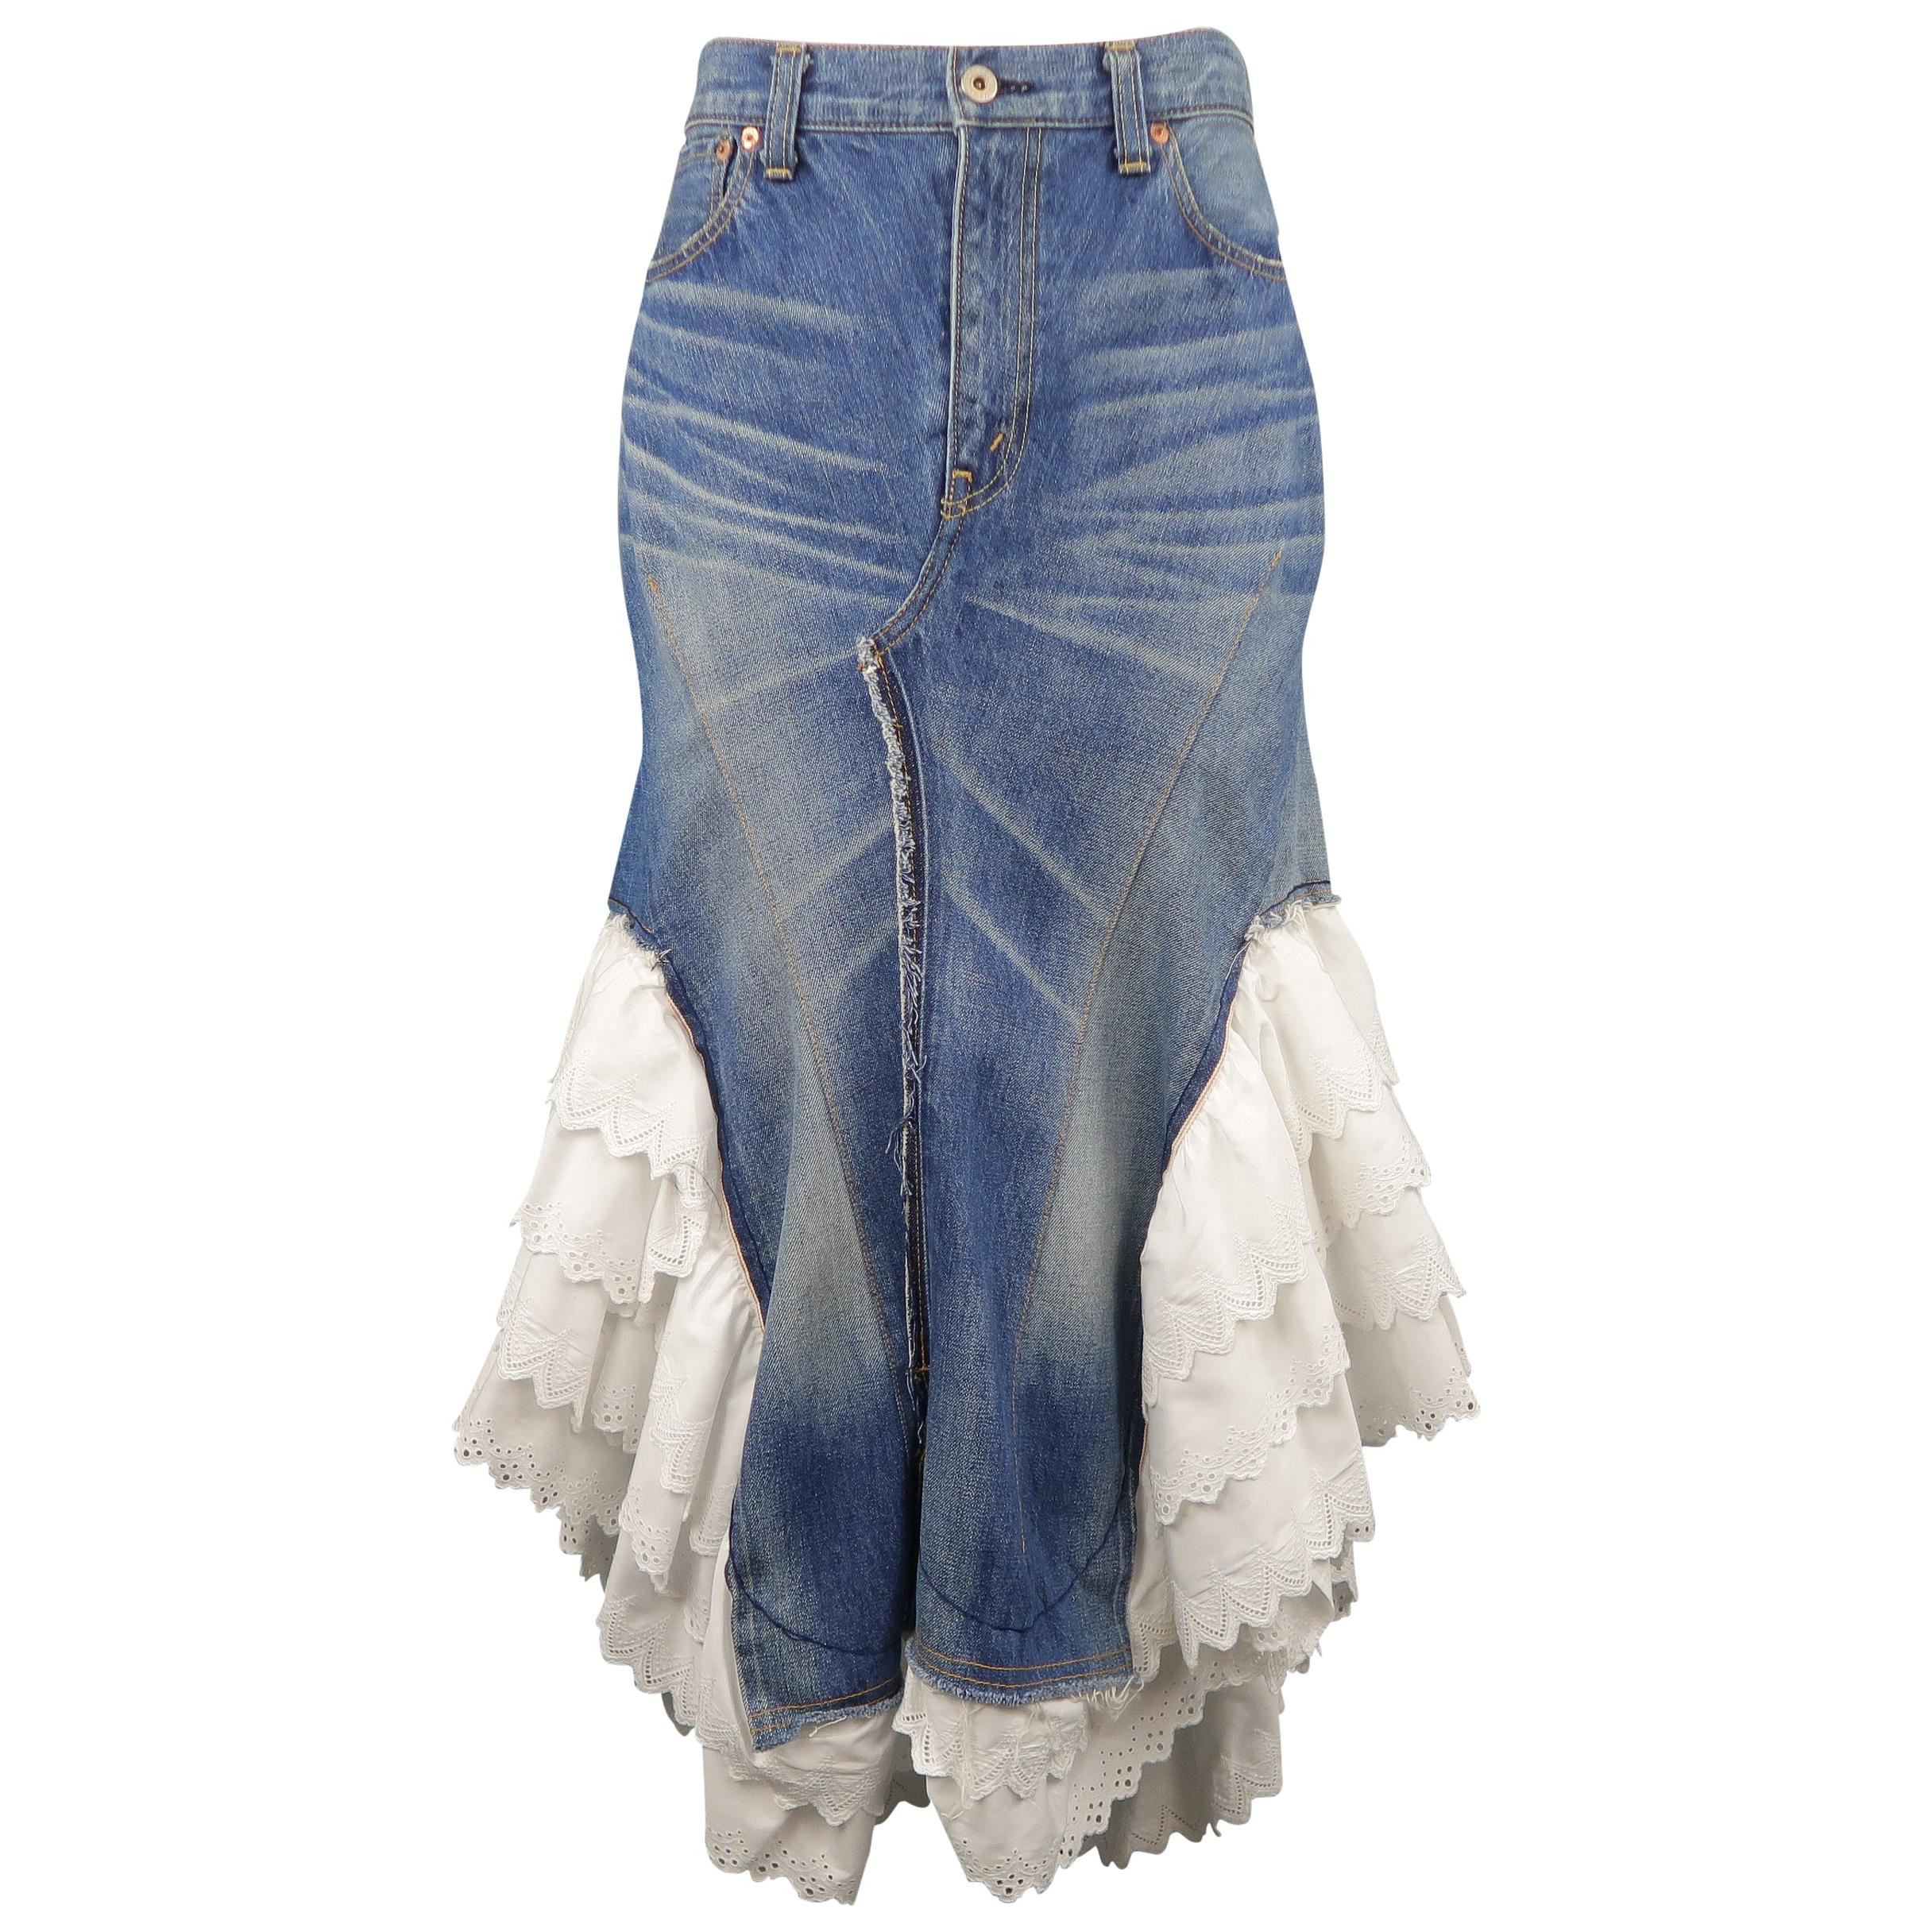 0a9edd6d3f Denim Skirts - 142 For Sale on 1stdibs